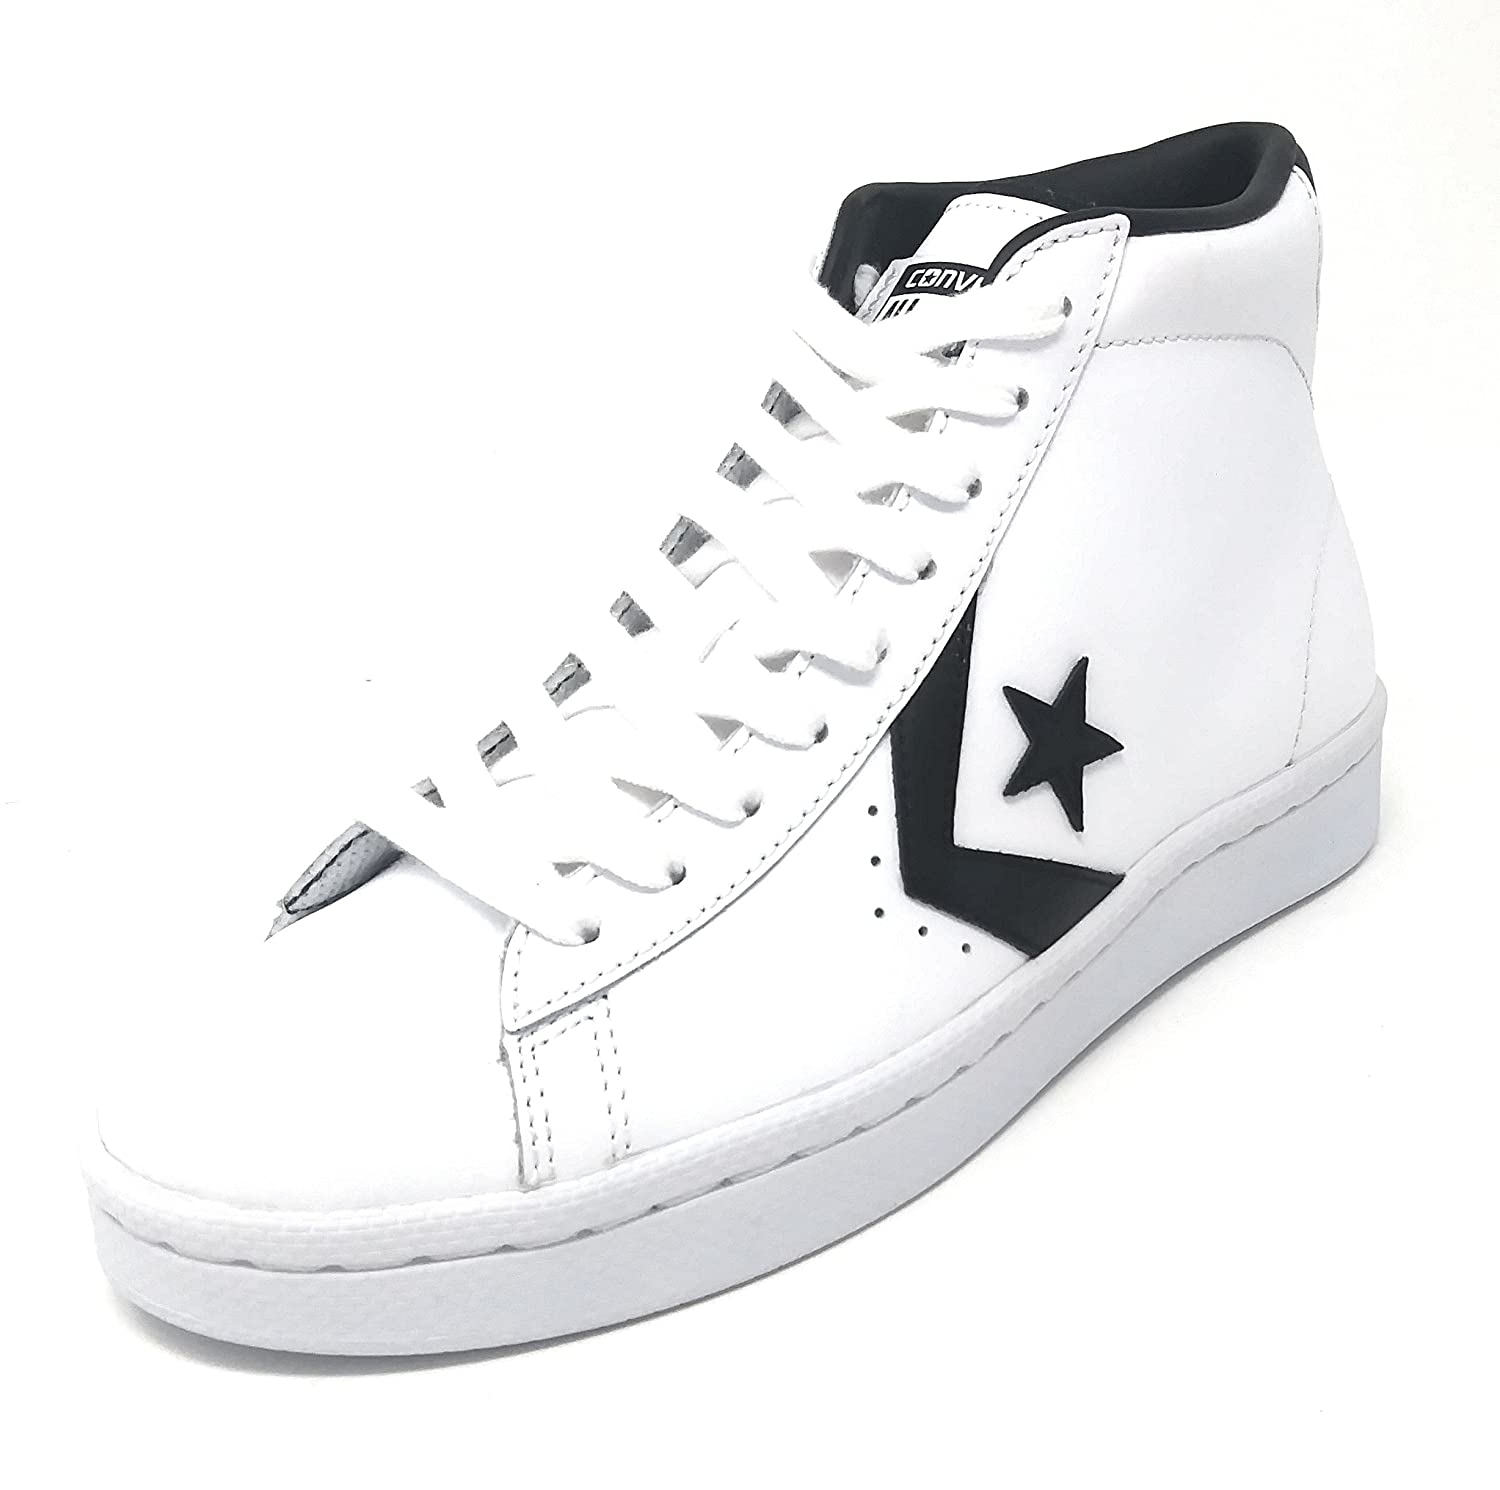 Converse CTAS Chuch Taylor All Star PL 76 MID White/Black/White B07DLL9YGD 12 Mens / 13.5 Womens